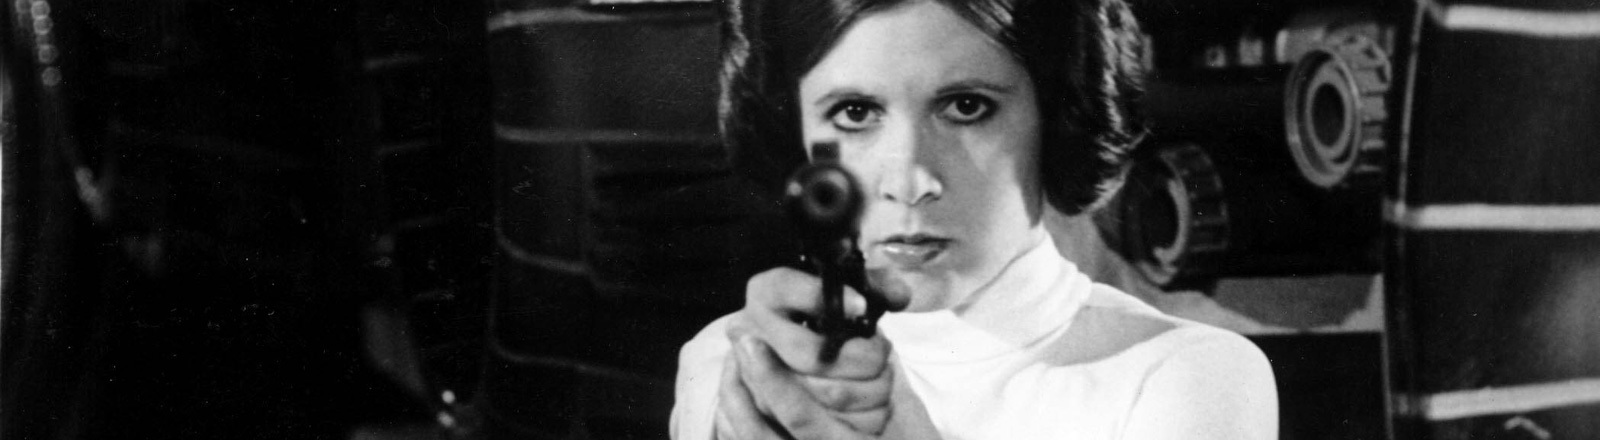 Carrie Fisher als Prinzessin Leia in Star Wars 1977